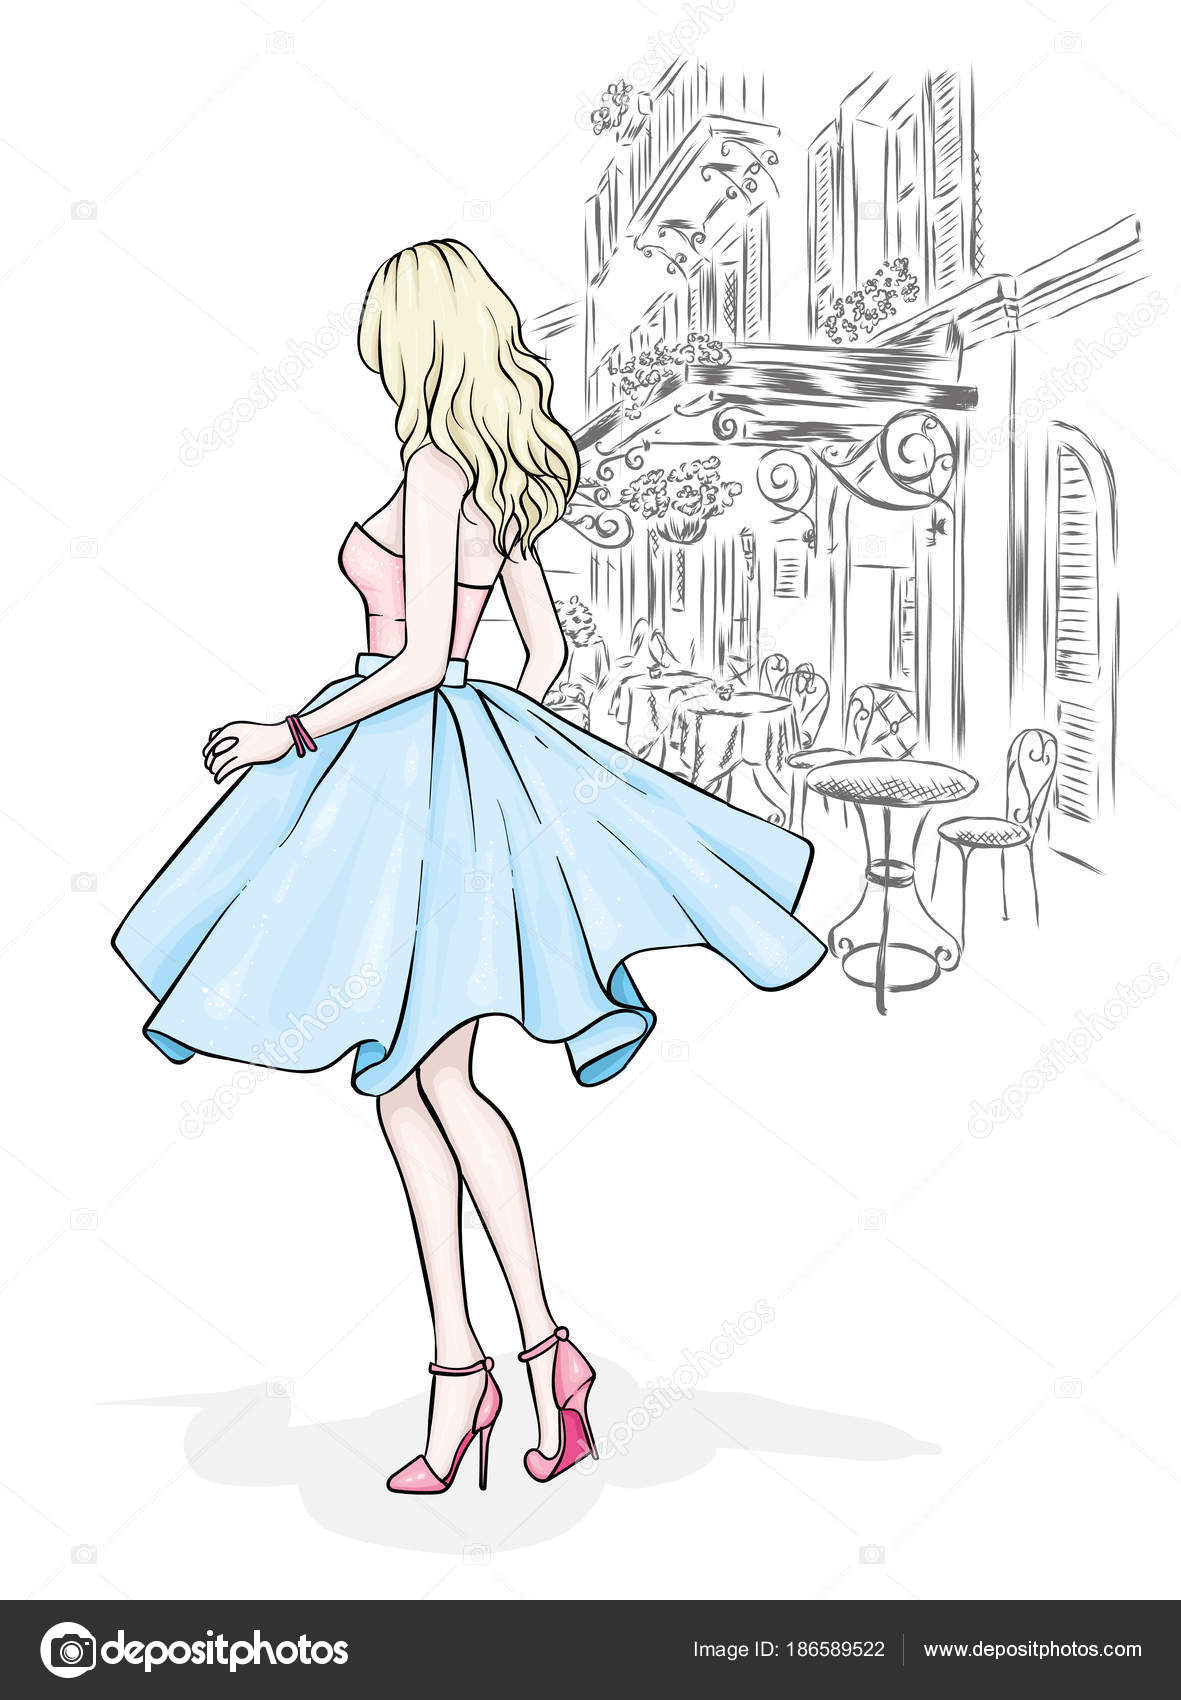 6605d2a0fafd0c A model in a skirt, top and high-heeled shoes. Vector illustration. Clothing,  accessories, fashion and style.– stock illustration